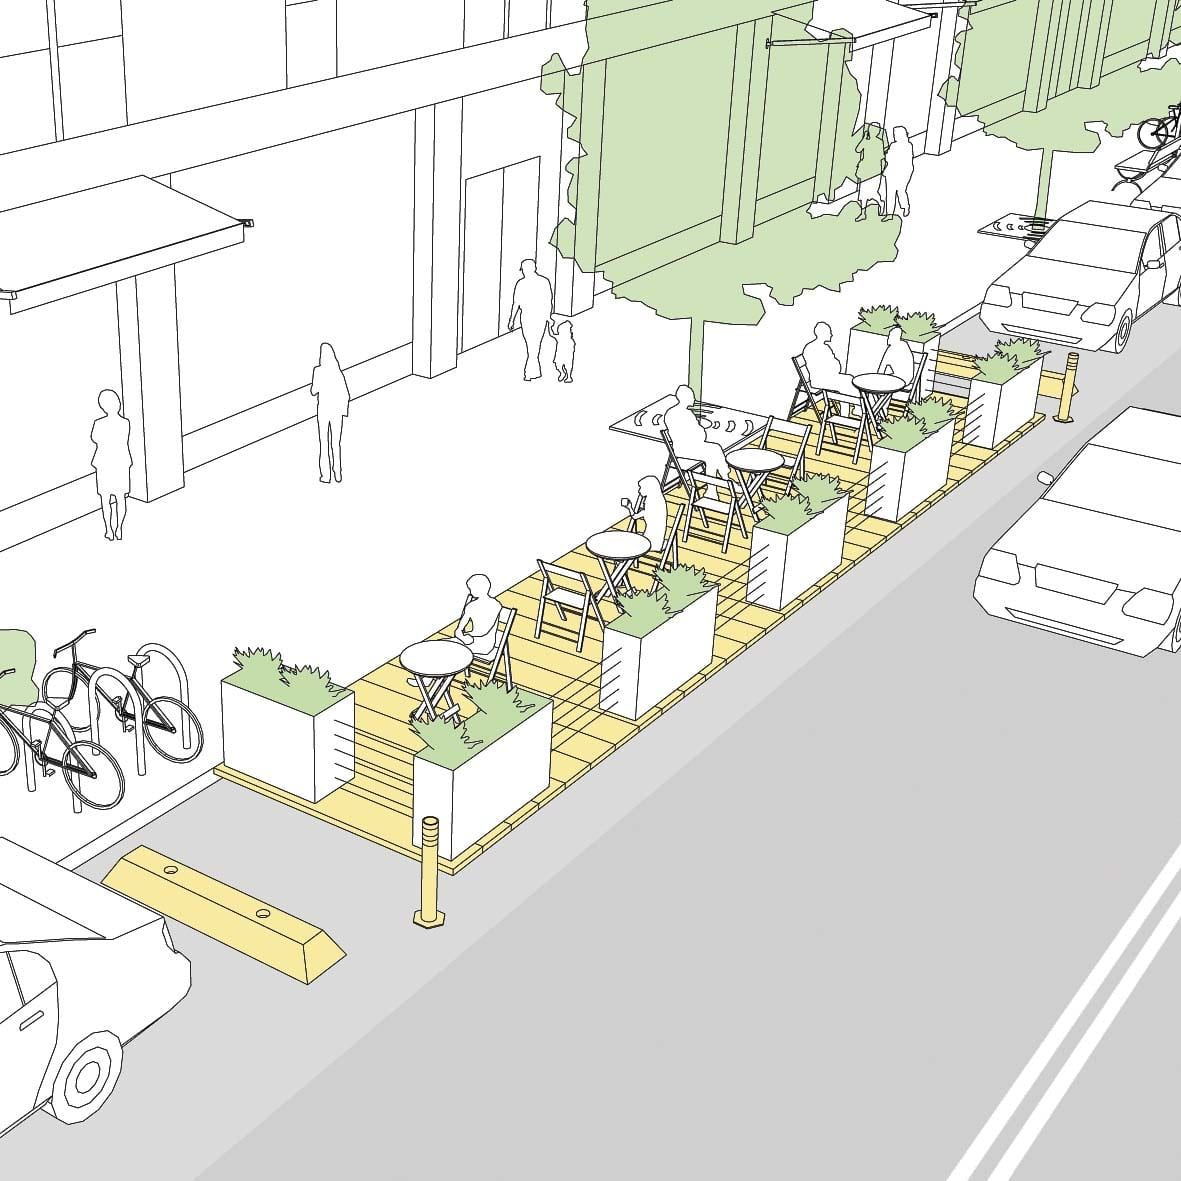 Permitted parklets provide restaurants and retailers the opportunity to expand their service to an outdoor space in order to achieve required physical distancing. Image provided by city of Battle Ground